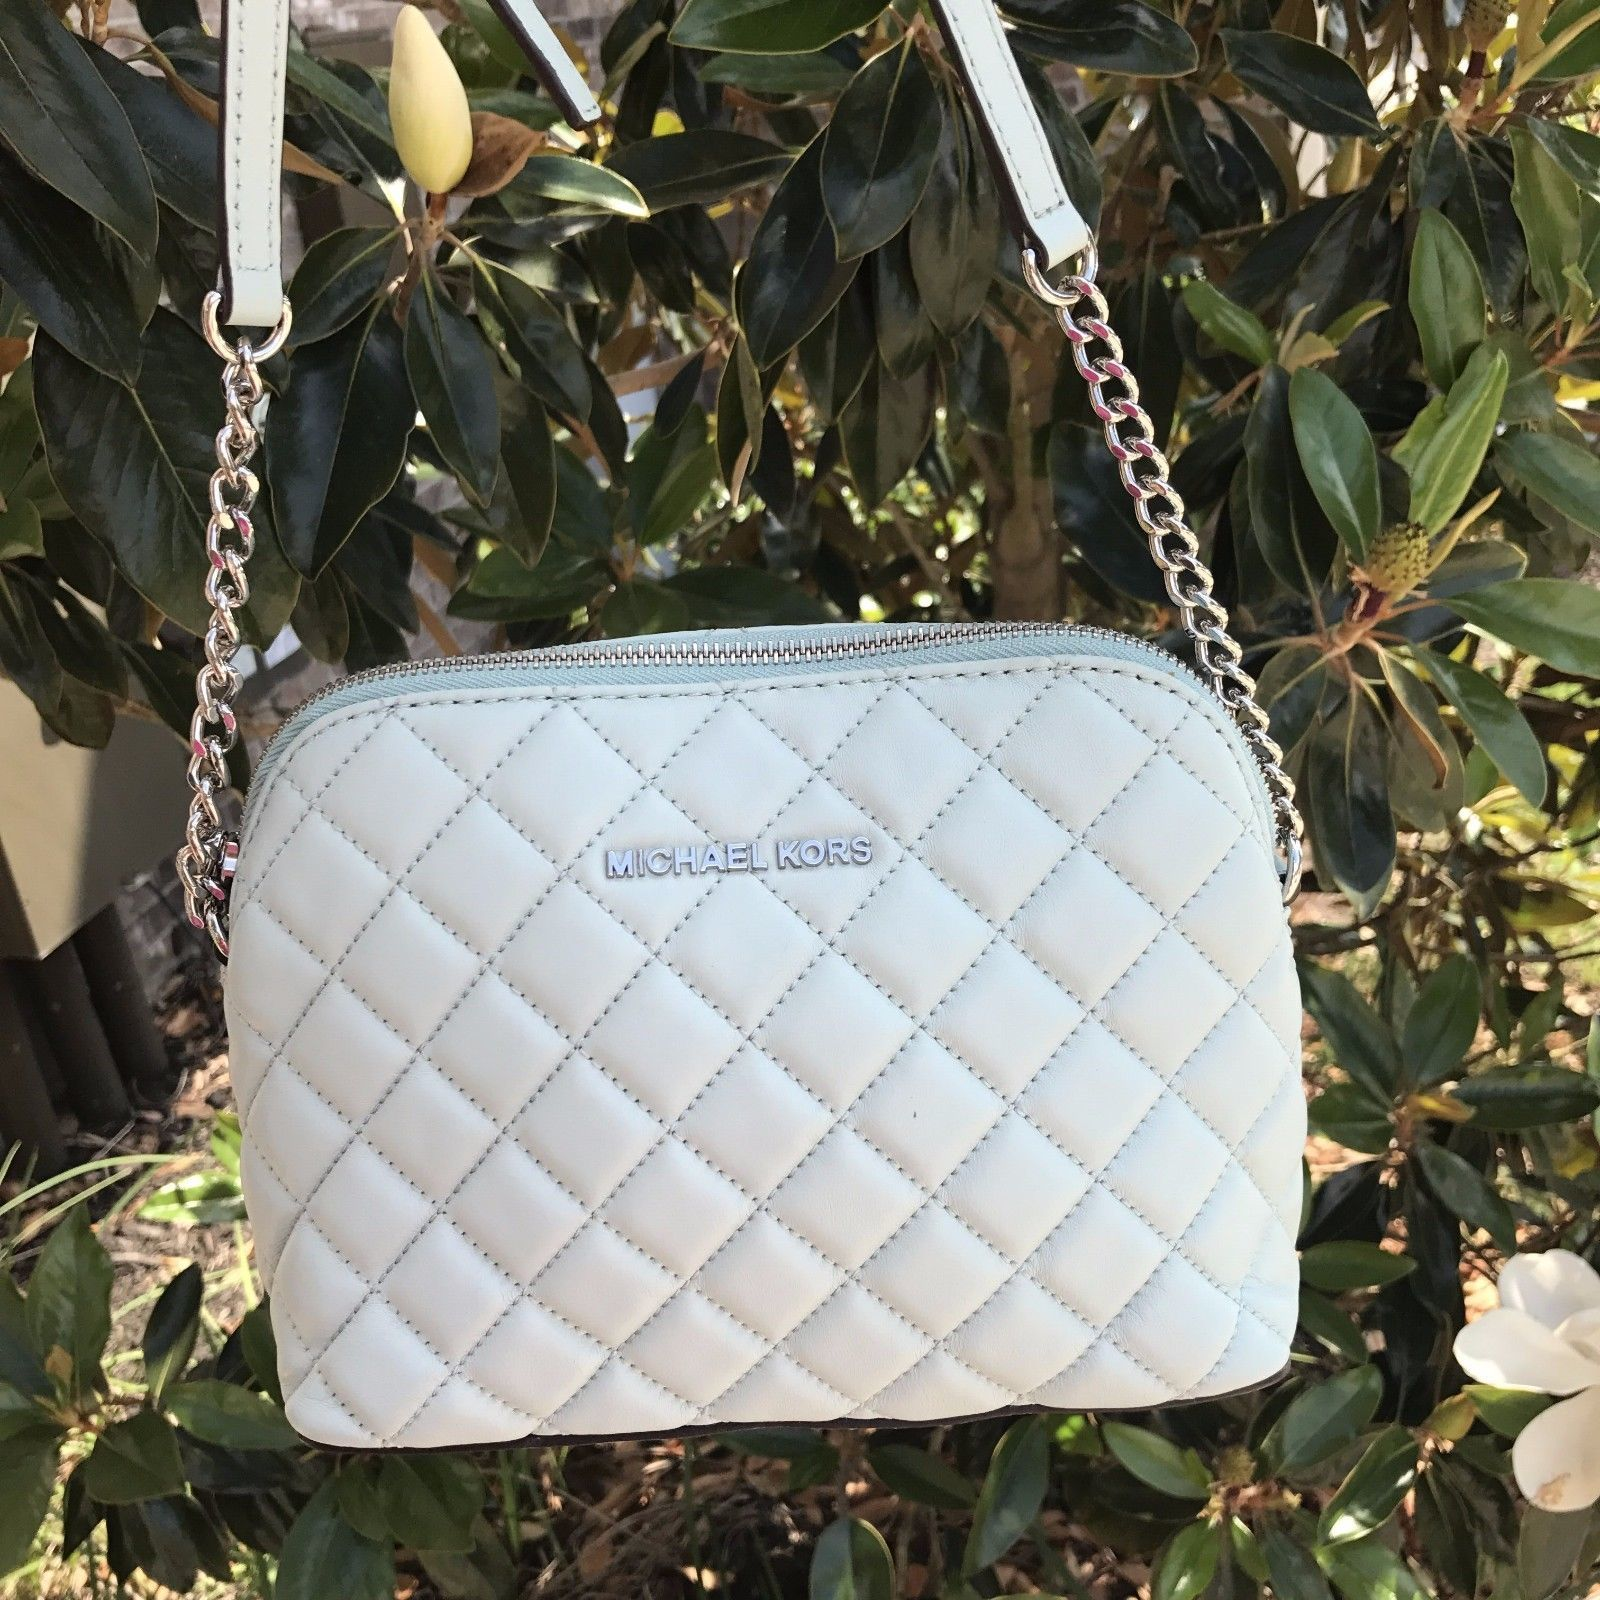 f05c9752253873 S l1600. S l1600. Previous. Michael Kors Cindy Large Dome Crossbody Leather  Pale Blue Soft Leather New